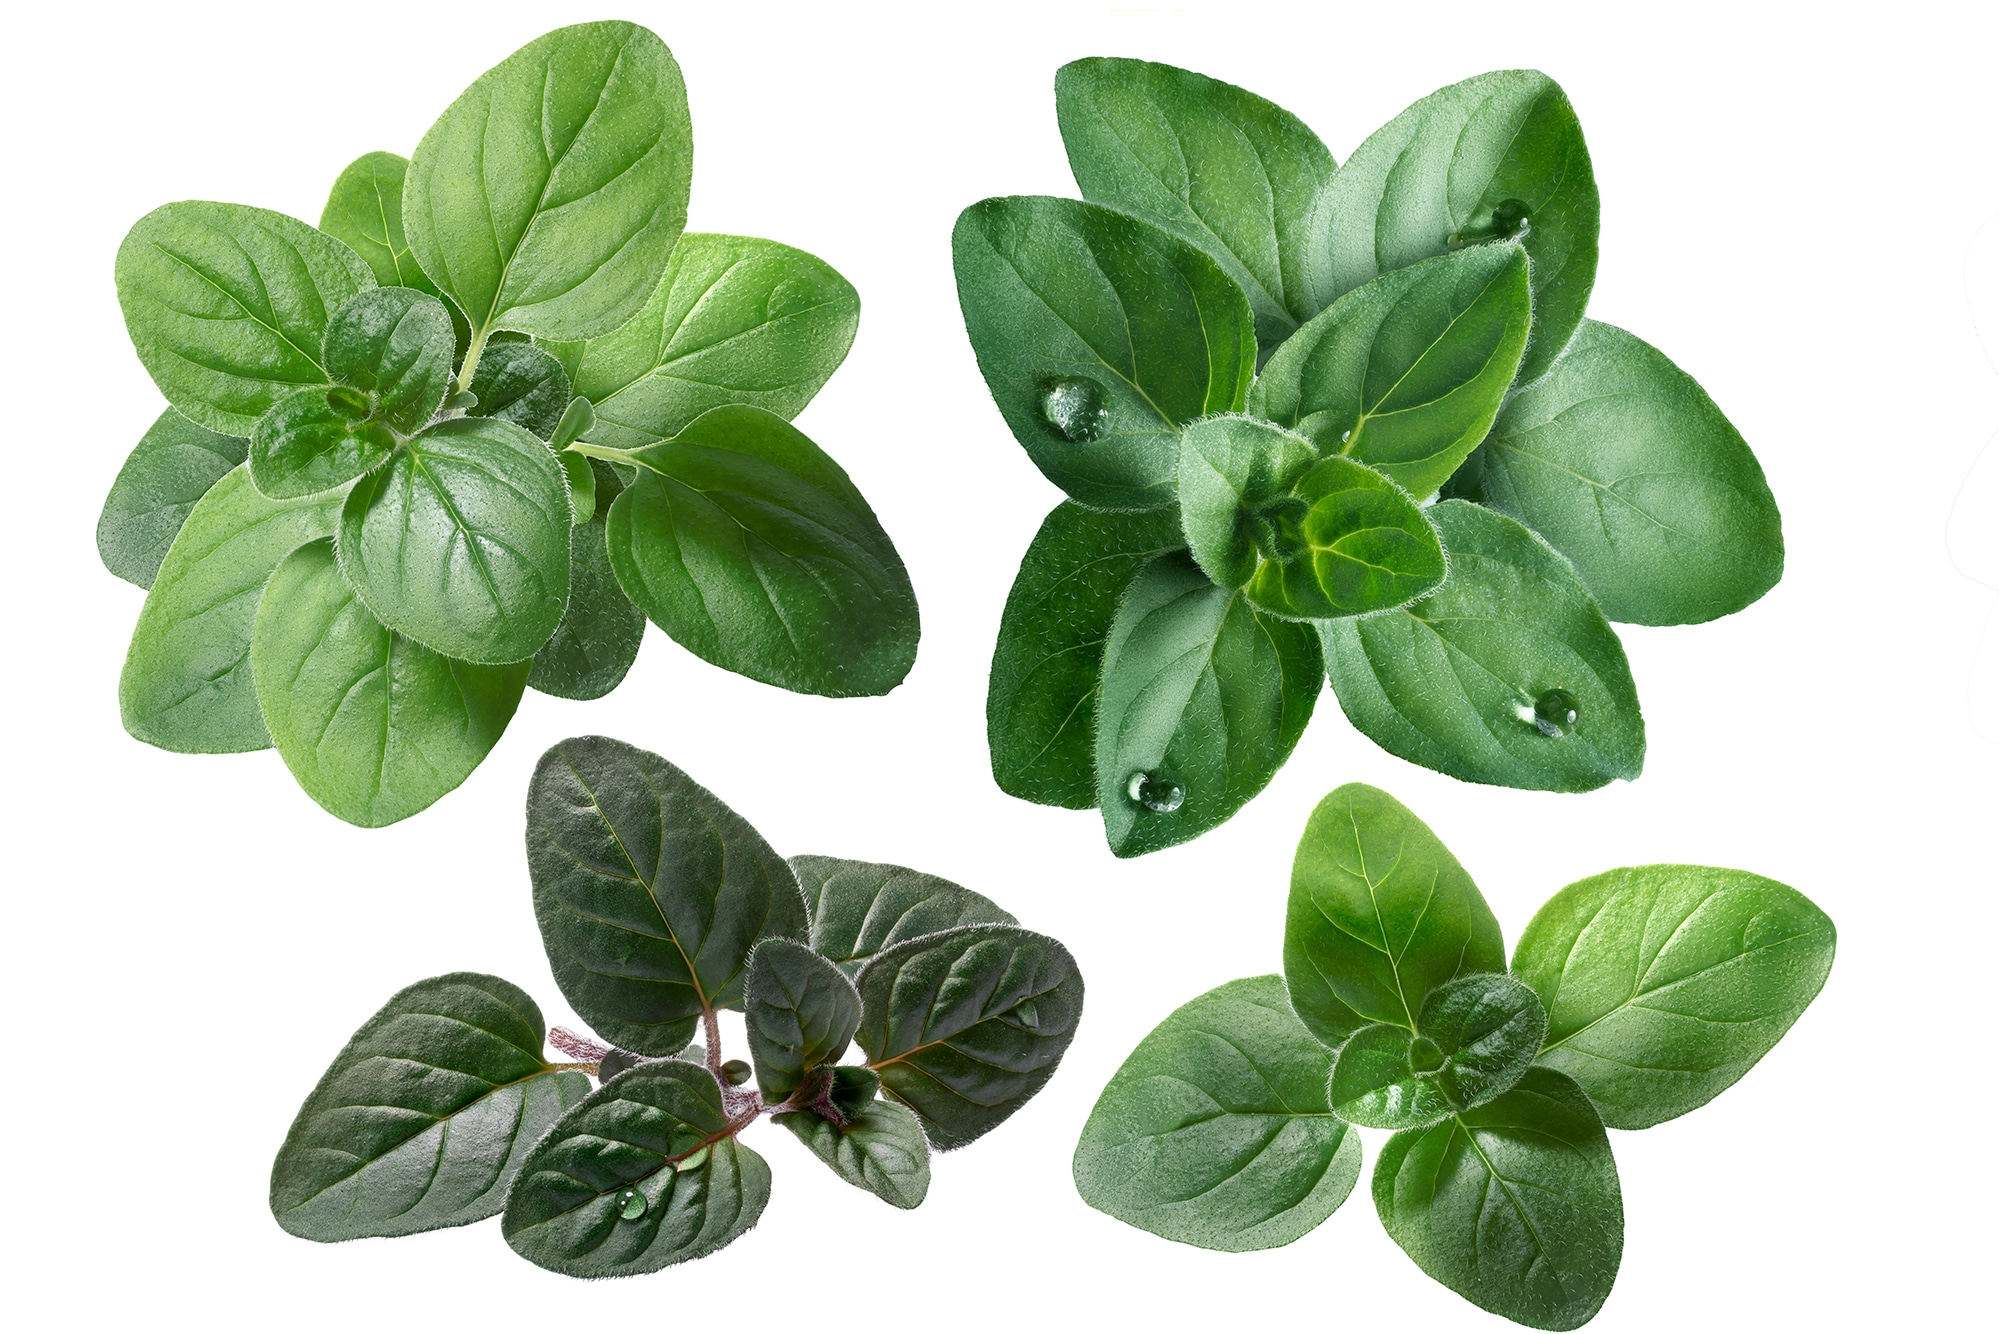 Different types of oregano sprigs against a bright white background.